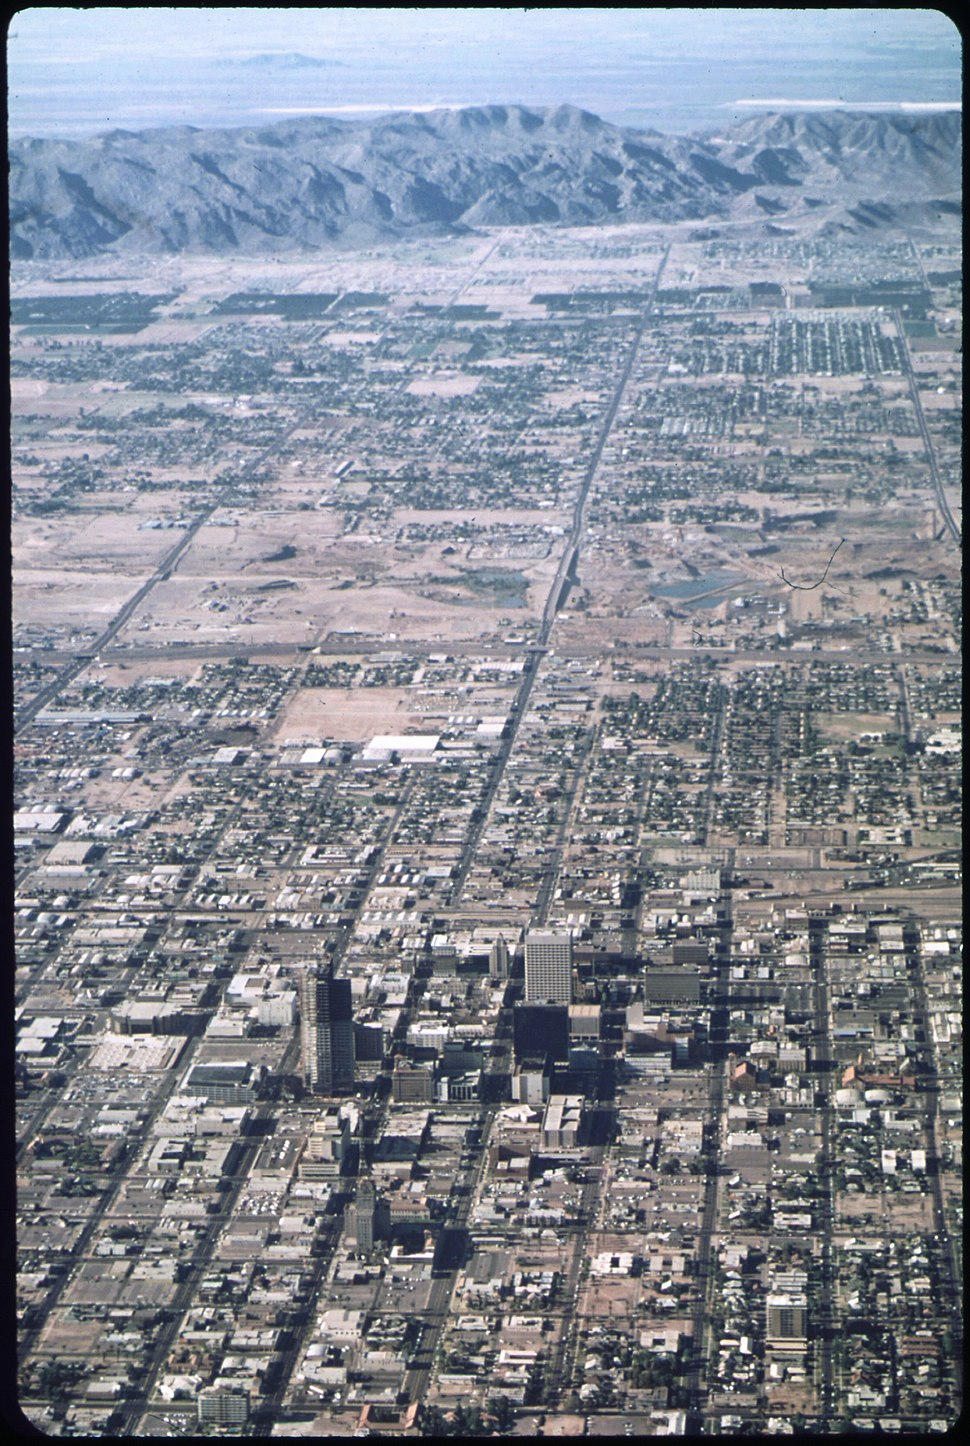 The View of Phoenix's Urban Sprawl from 4000 Ft. South Mountain in Background , 6 1972